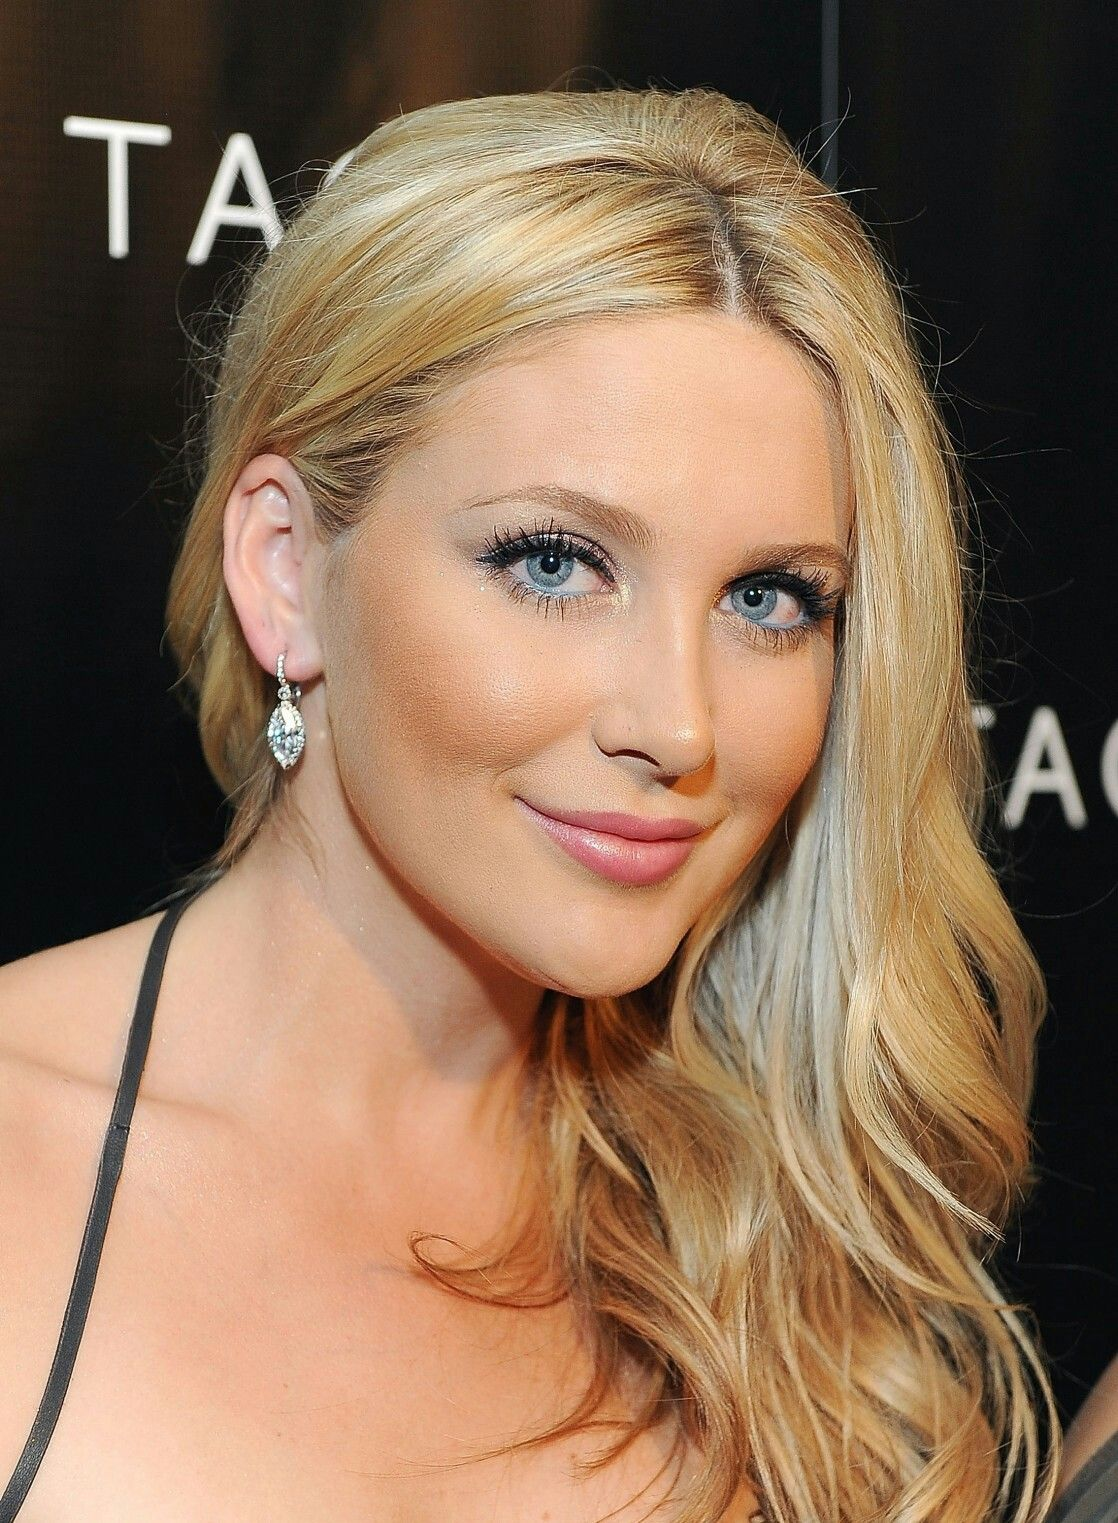 Hacked Stephanie Pratt nude (79 photos), Pussy, Sideboobs, Twitter, cleavage 2019